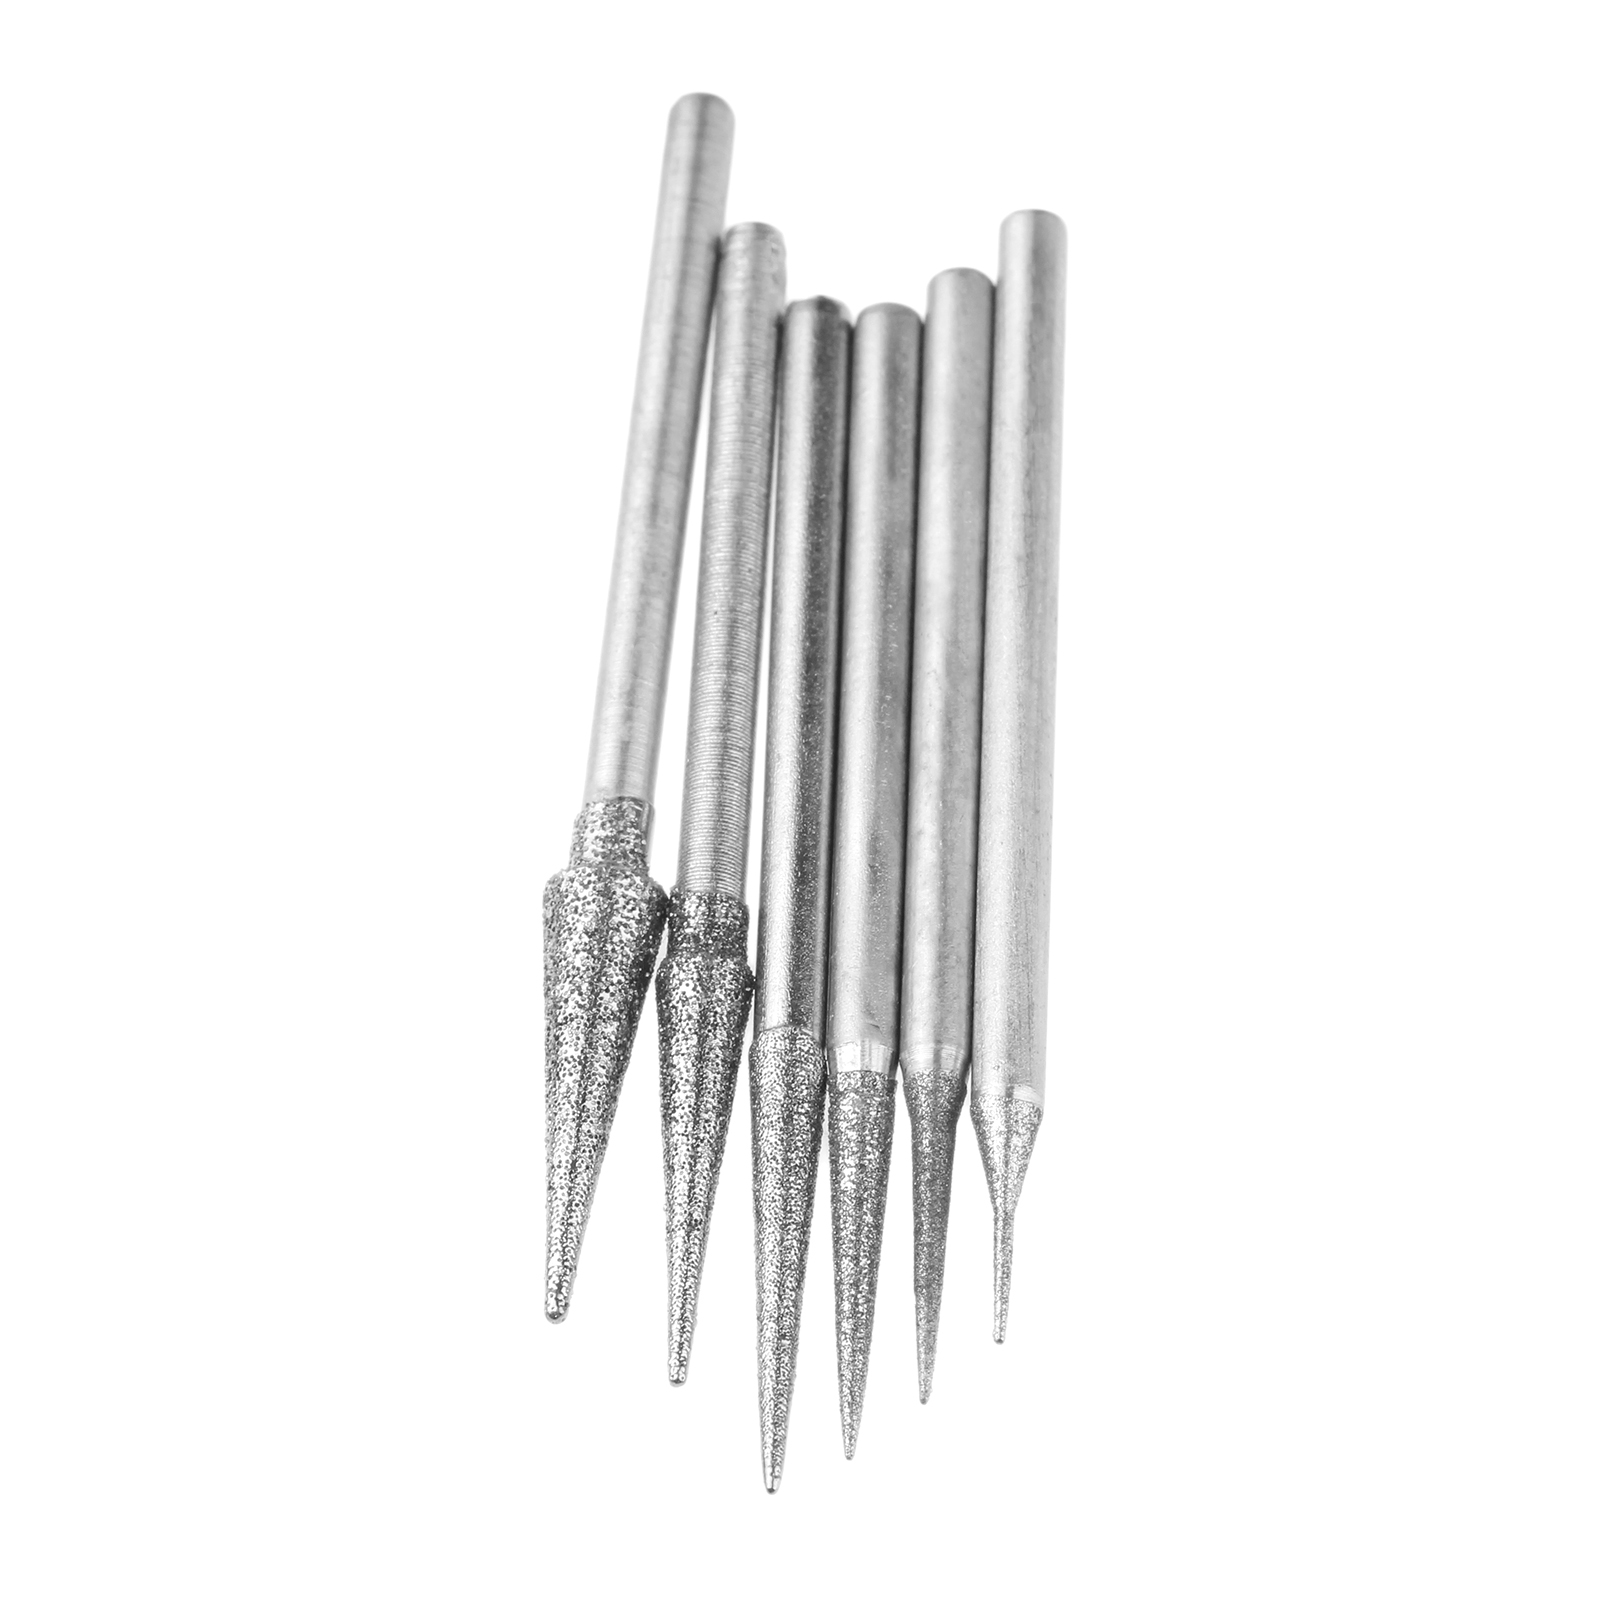 Image 3 - DRELD 6Pcs 1 4mm Diamond Grinding Head Grinding Needle Bits Burrs Metal Stone Jade Engraving Carving Tools 2.35mm Shank D Needle-in Abrasive Tools from Tools